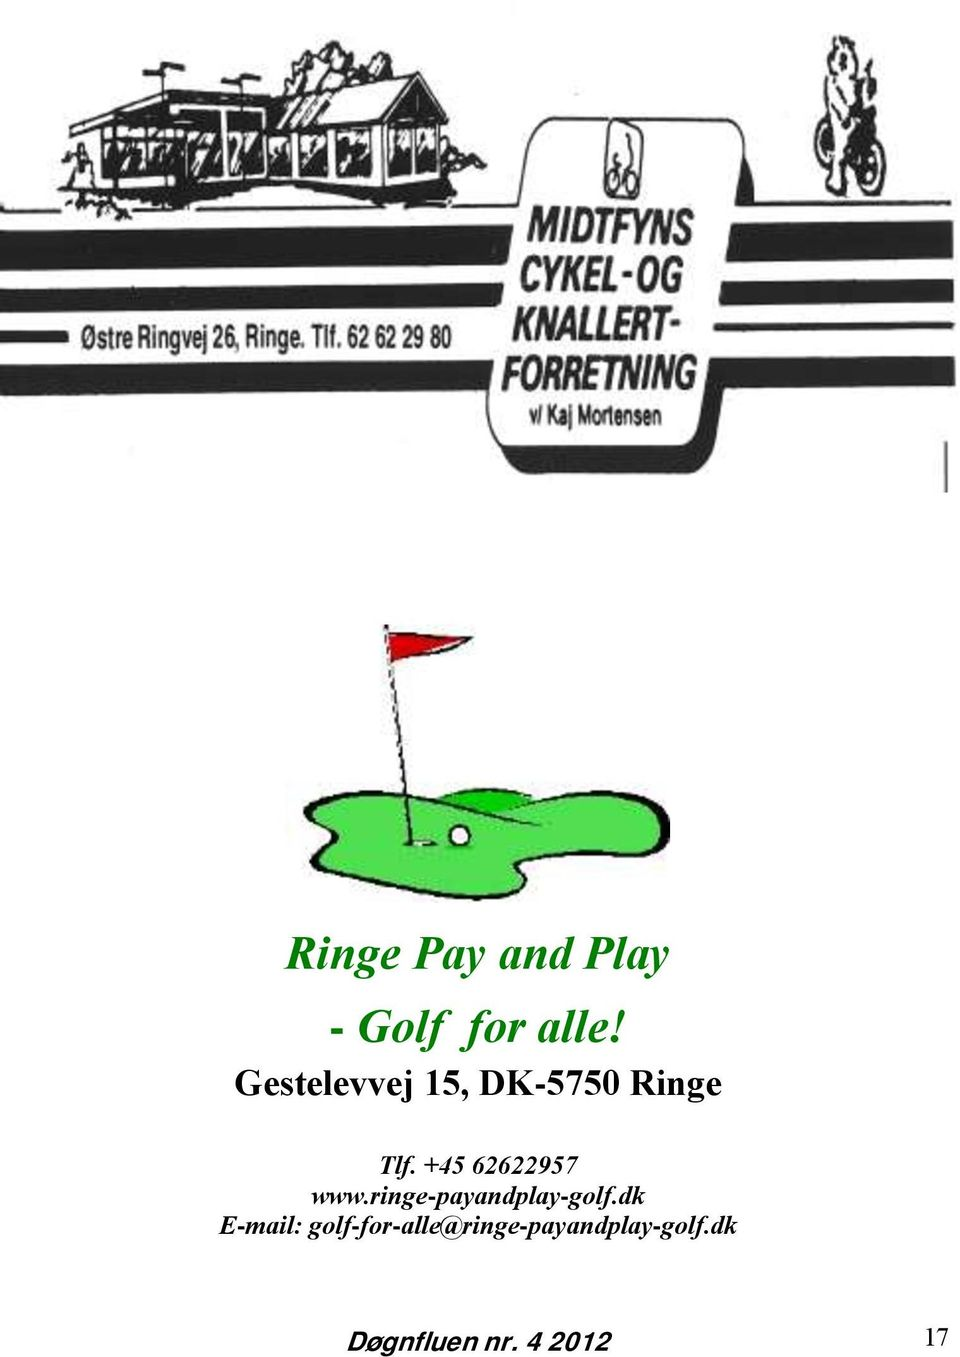 +45 62622957 www.ringe-payandplay-golf.